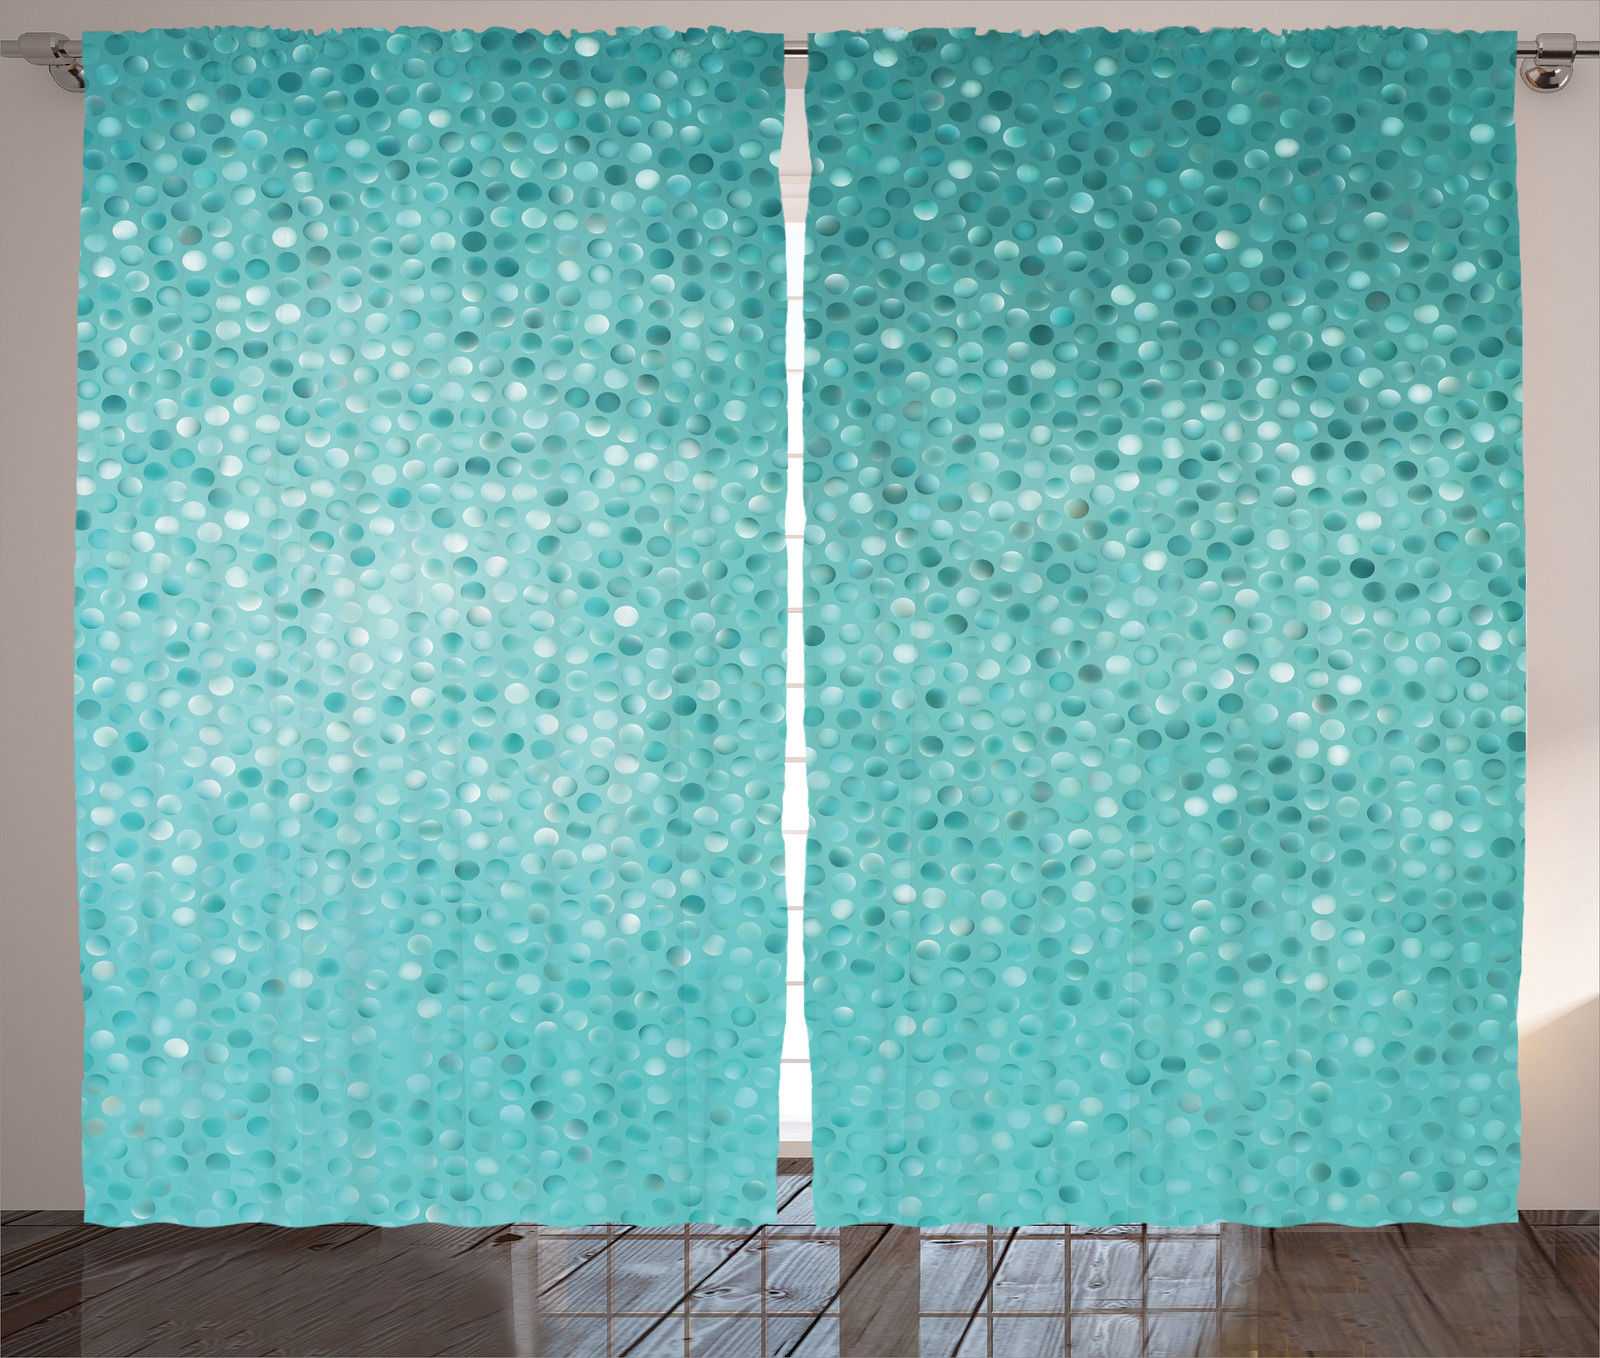 Turquoise Decor Curtains 2 Panels Set, Small Dot Mosaic Tiles Shape Simple  Classical Creative Artful Fun Design, Living Room Bedroom Accessories, By  ...